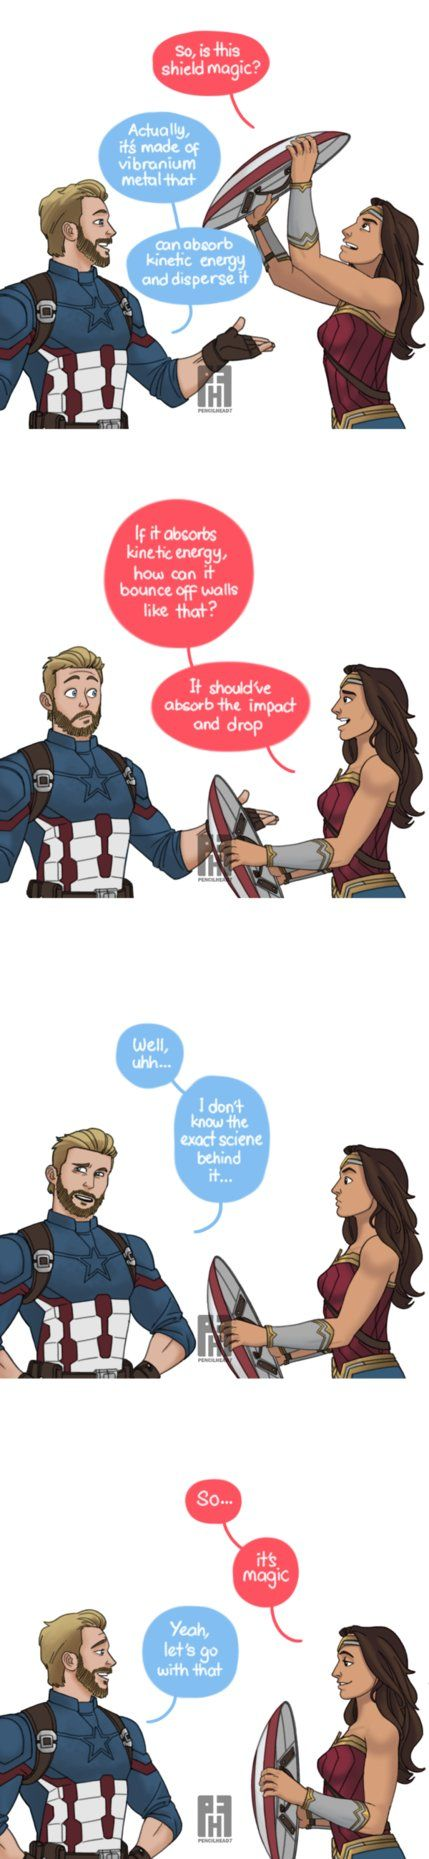 Cap's Shield by pencilHead7 || haha, she's got you there. now shave your silly face!!